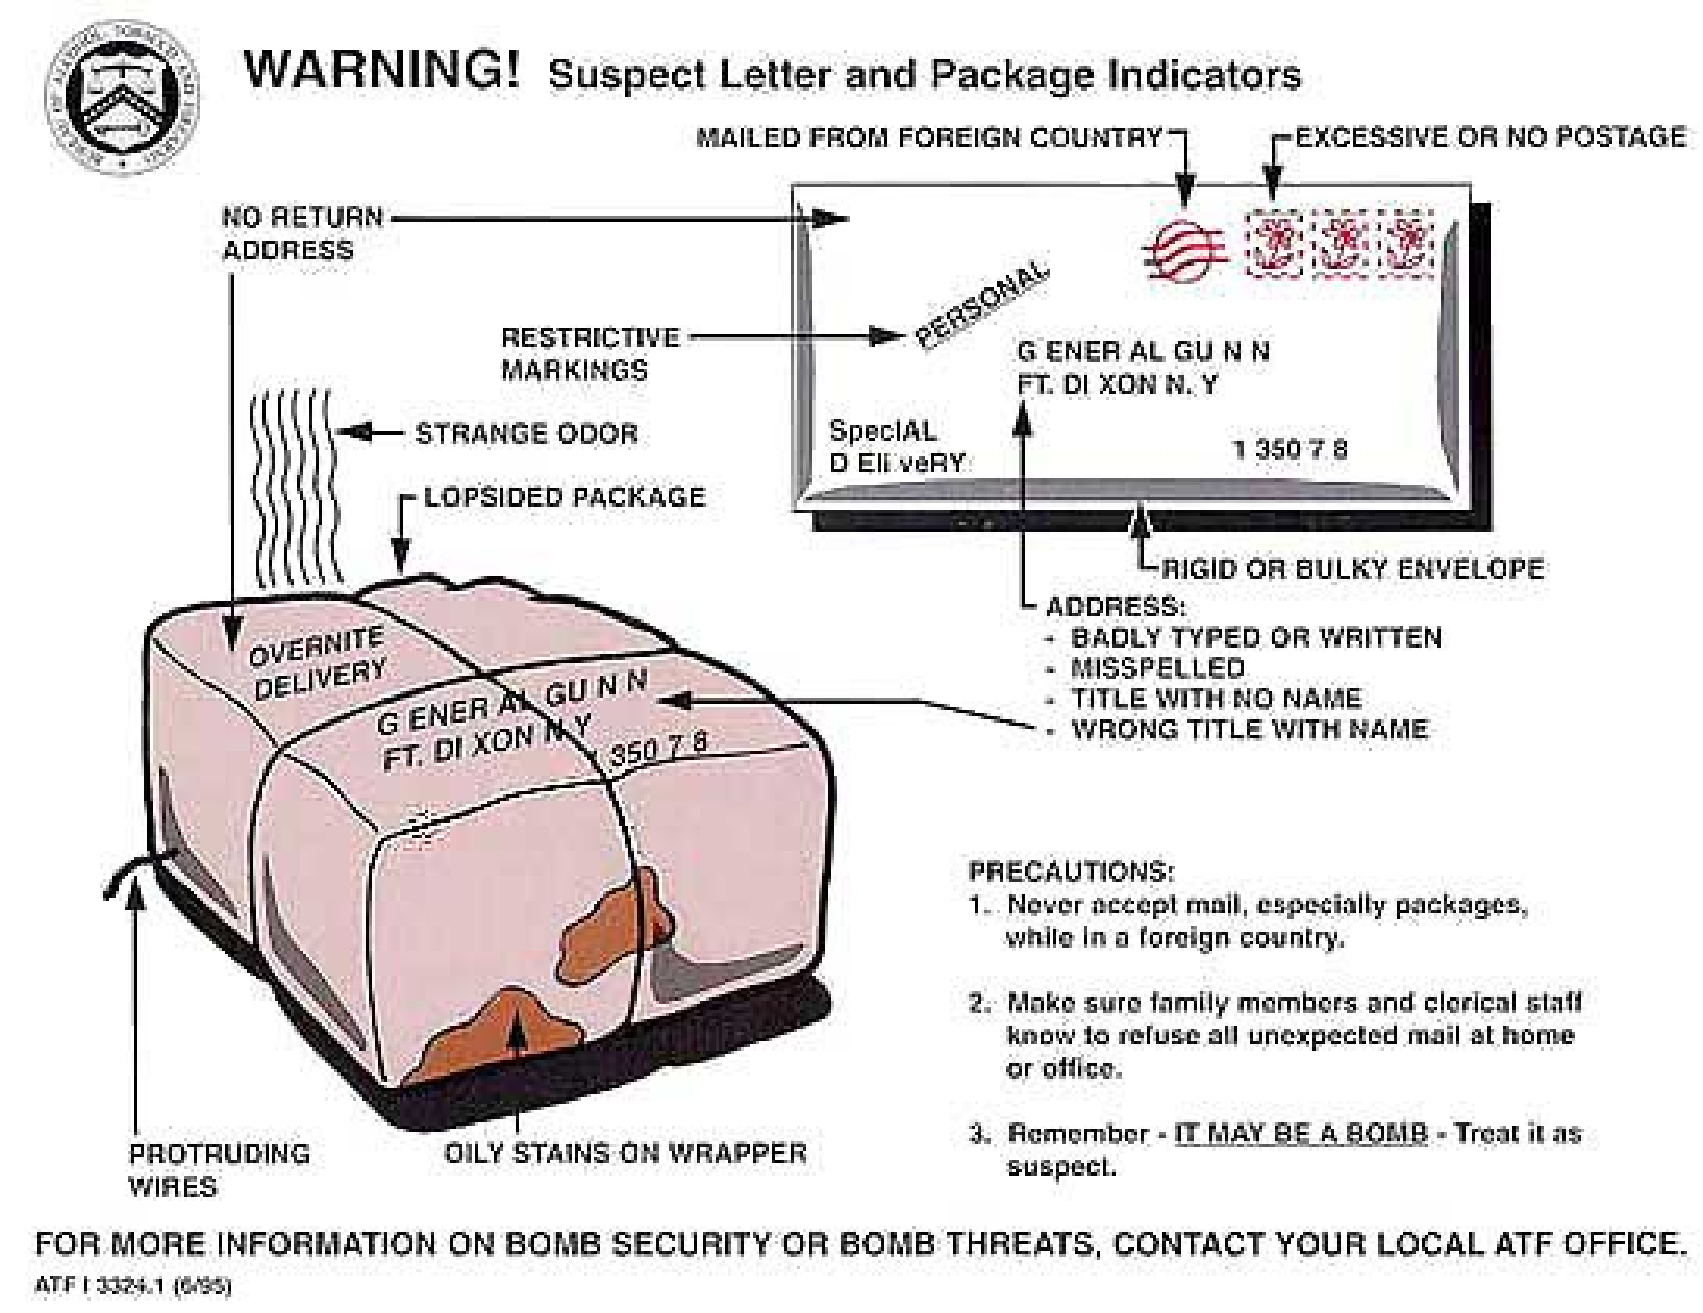 Suspicious package guidelines